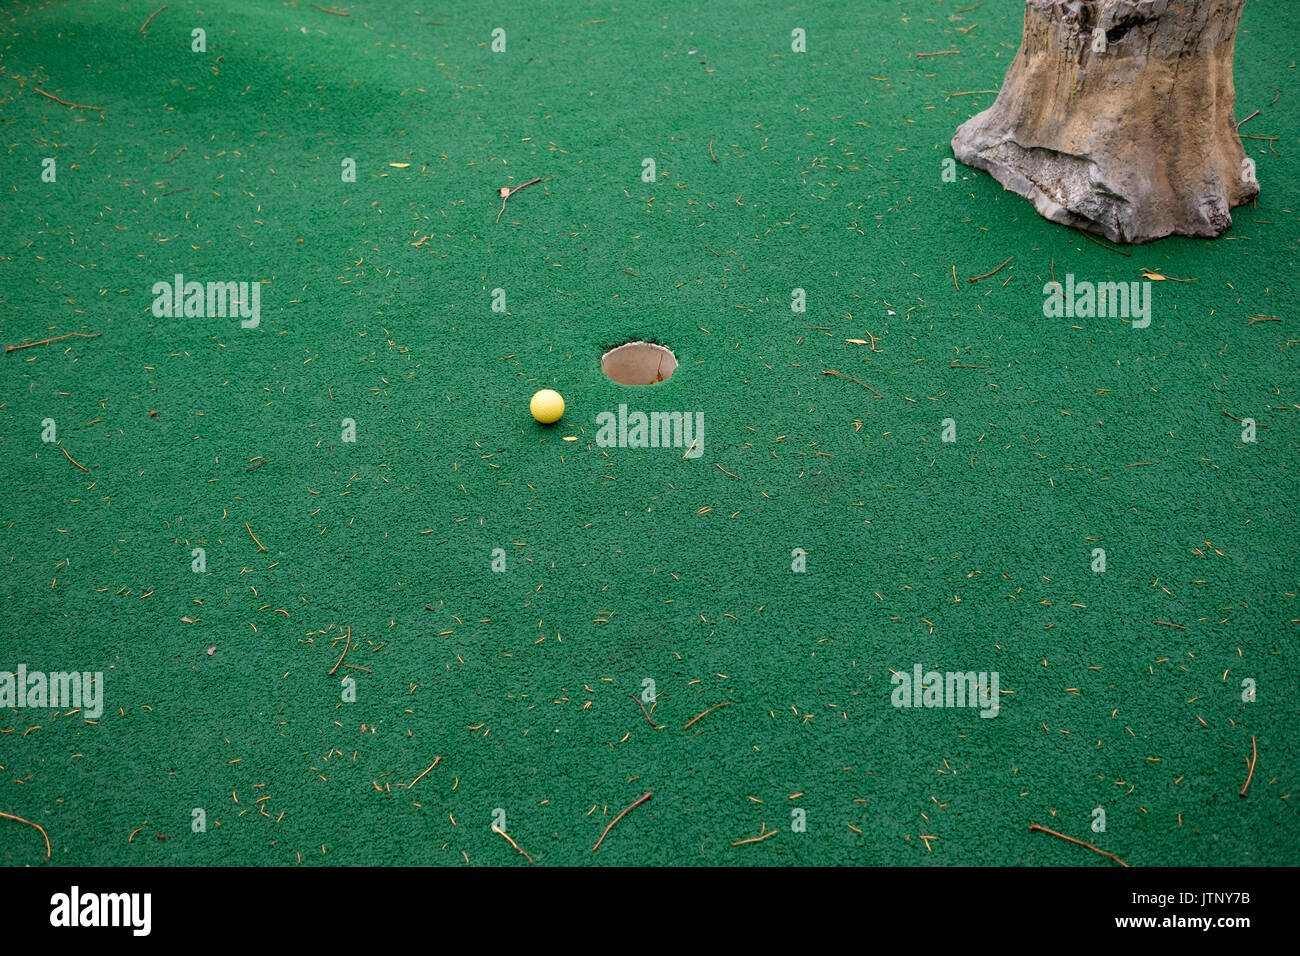 golf ball near hole - Stock Image